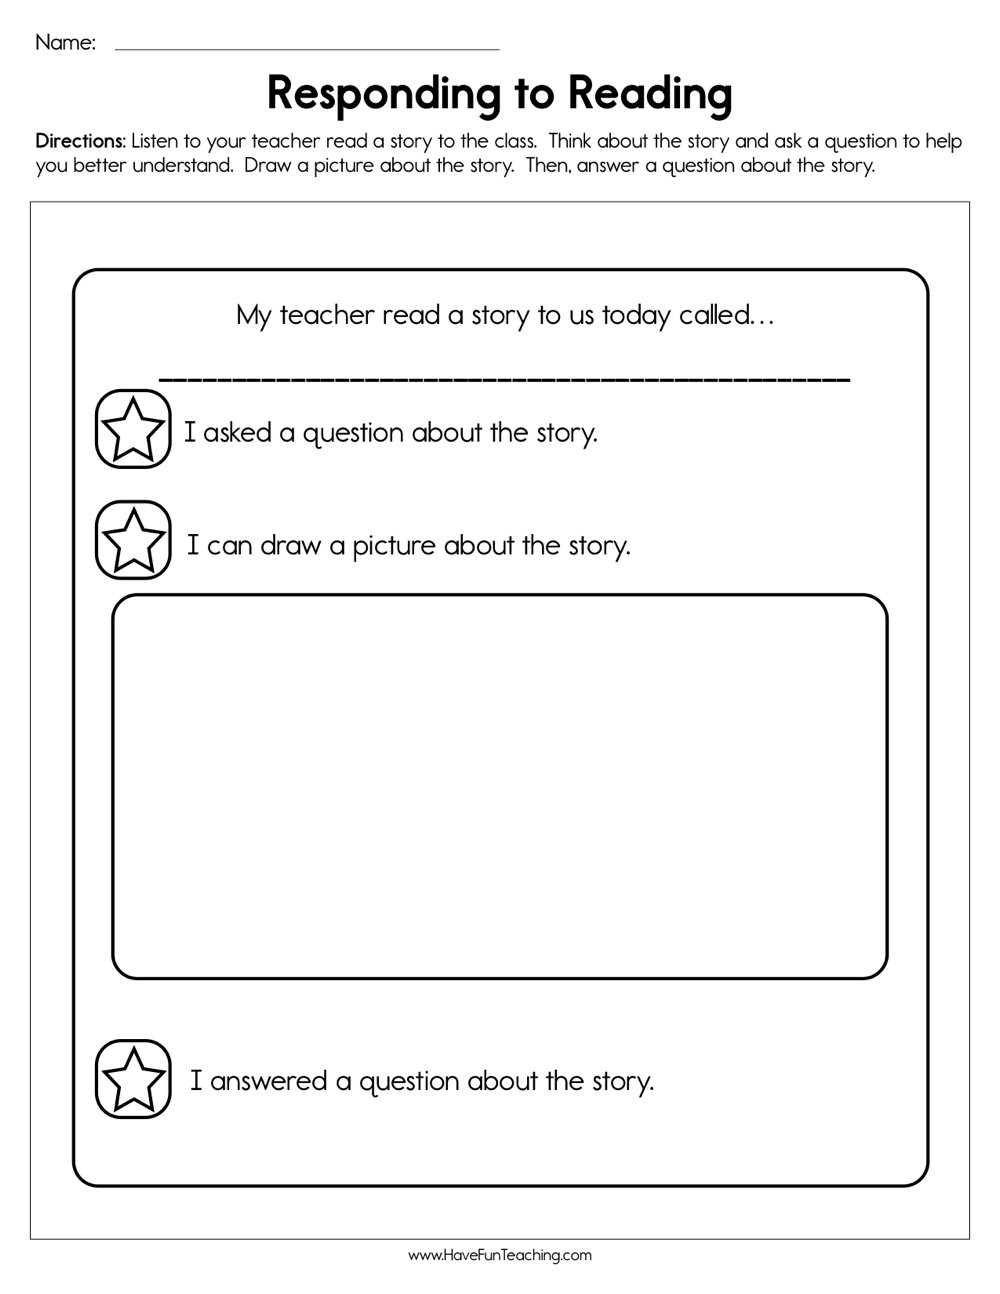 Reading and Responding Worksheets Responding to Reading Worksheet